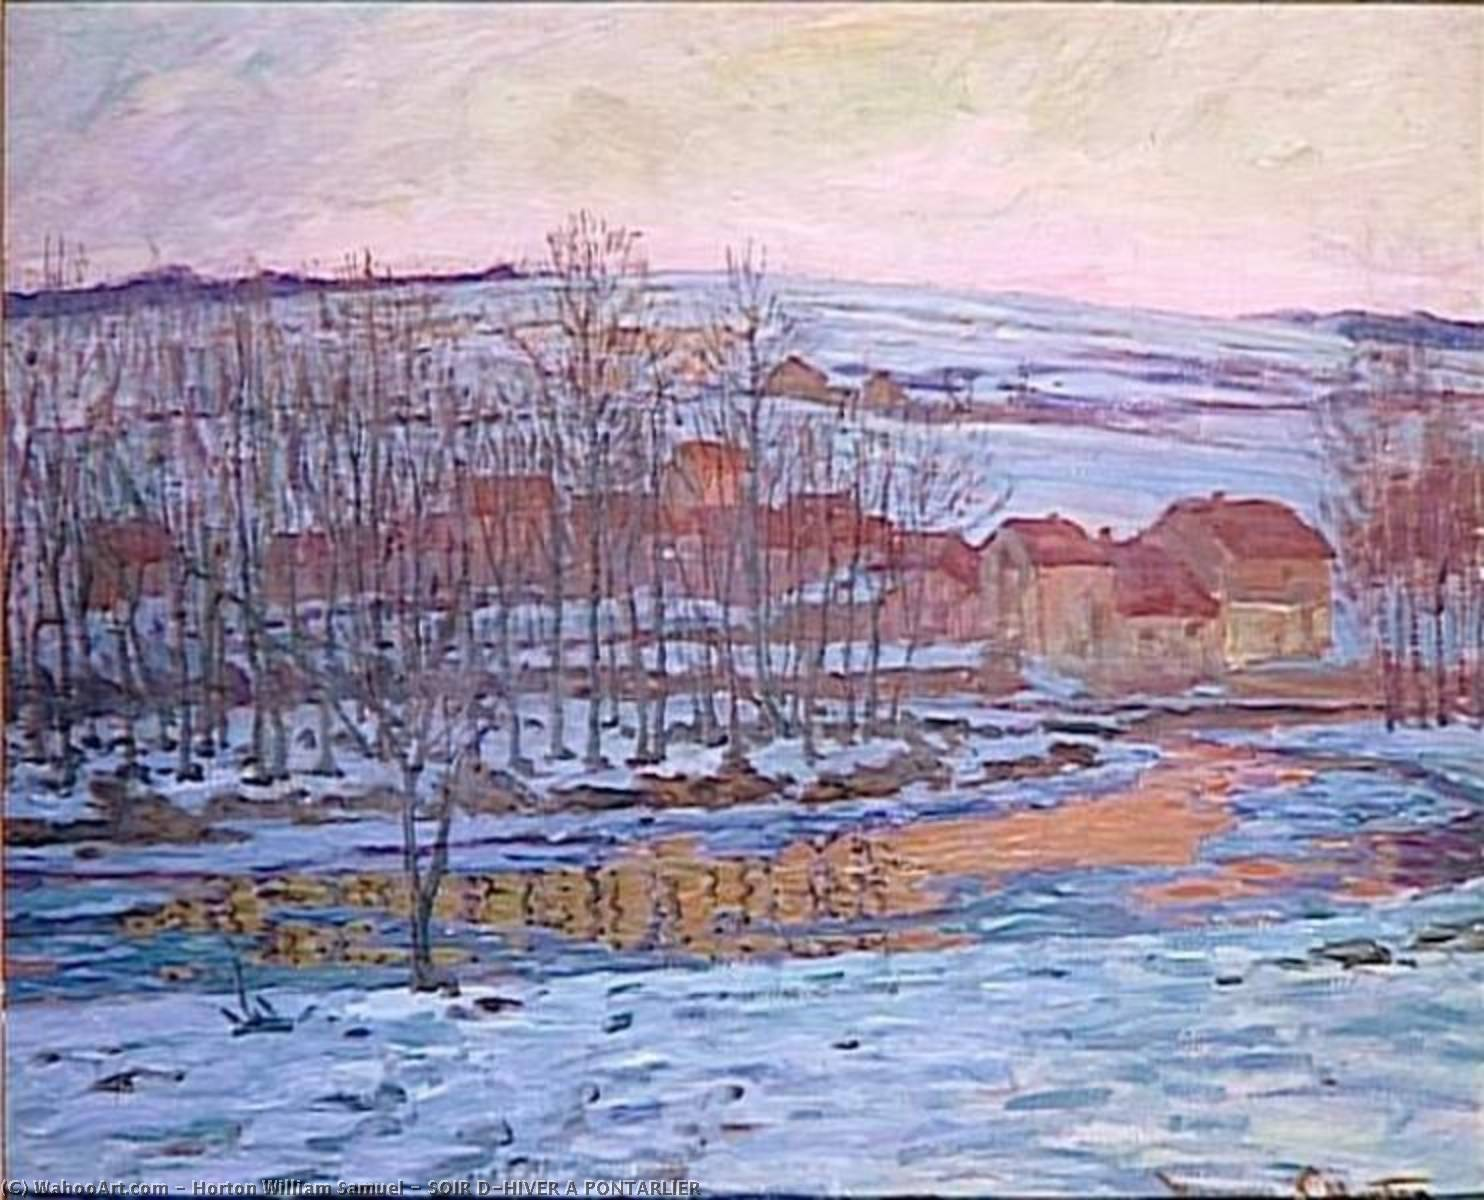 SOIR D'HIVER ПОНТАРЛЬЕ, масло по William Samuel Horton (1865-1936, United States)